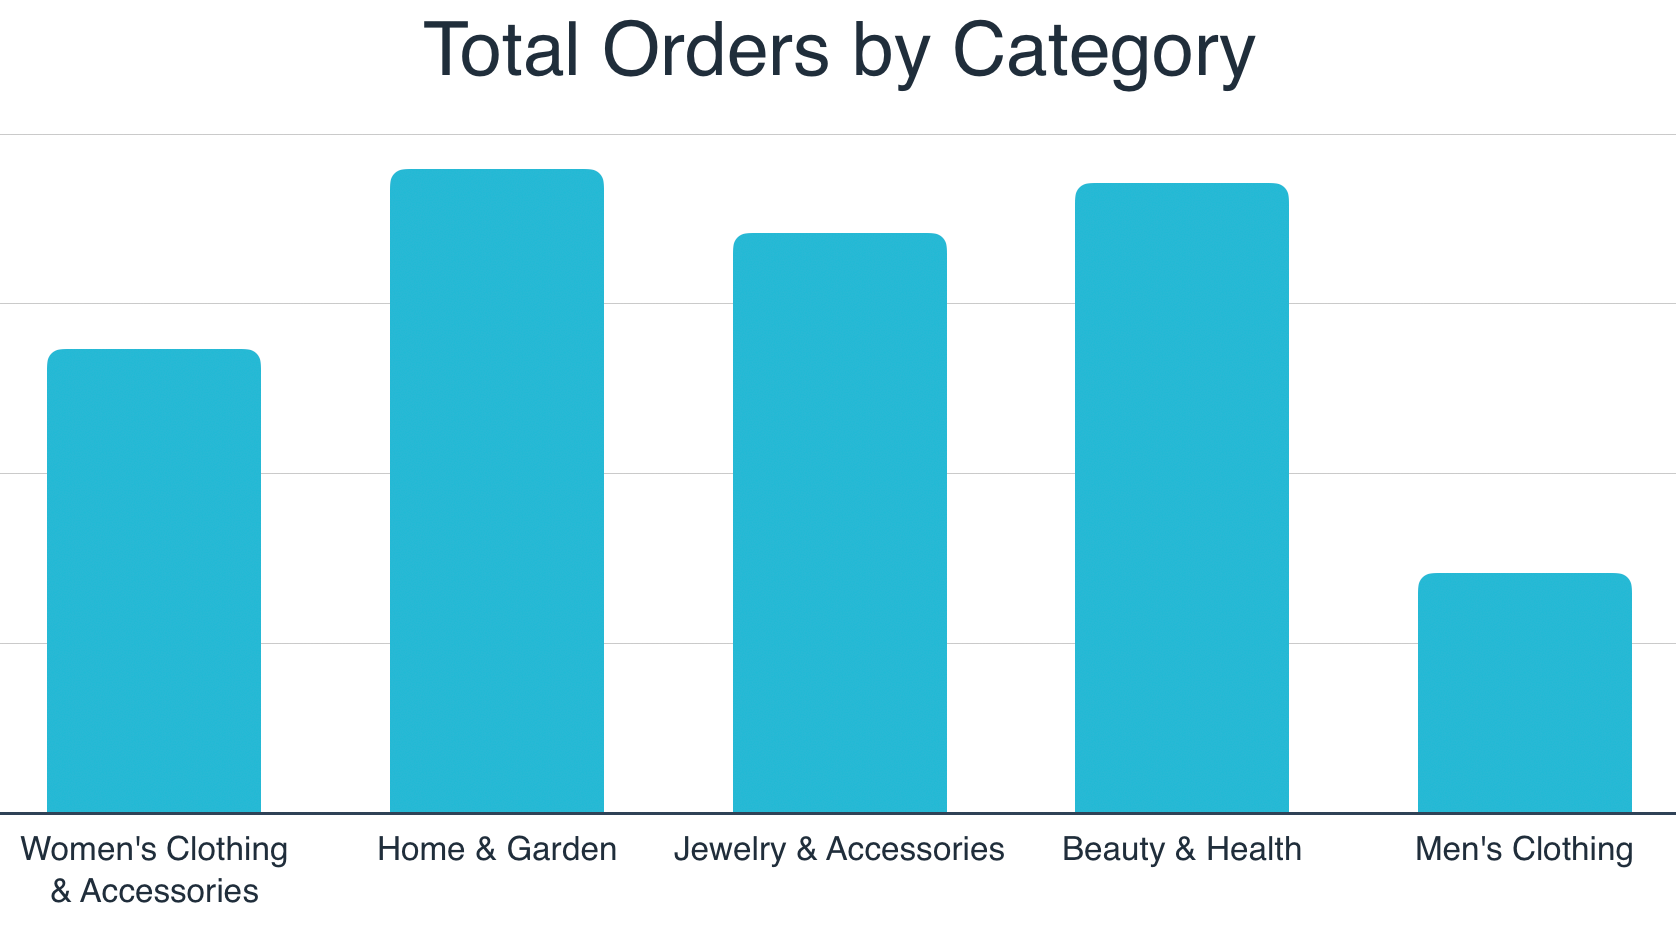 2019 Niche UK Markets by Orders